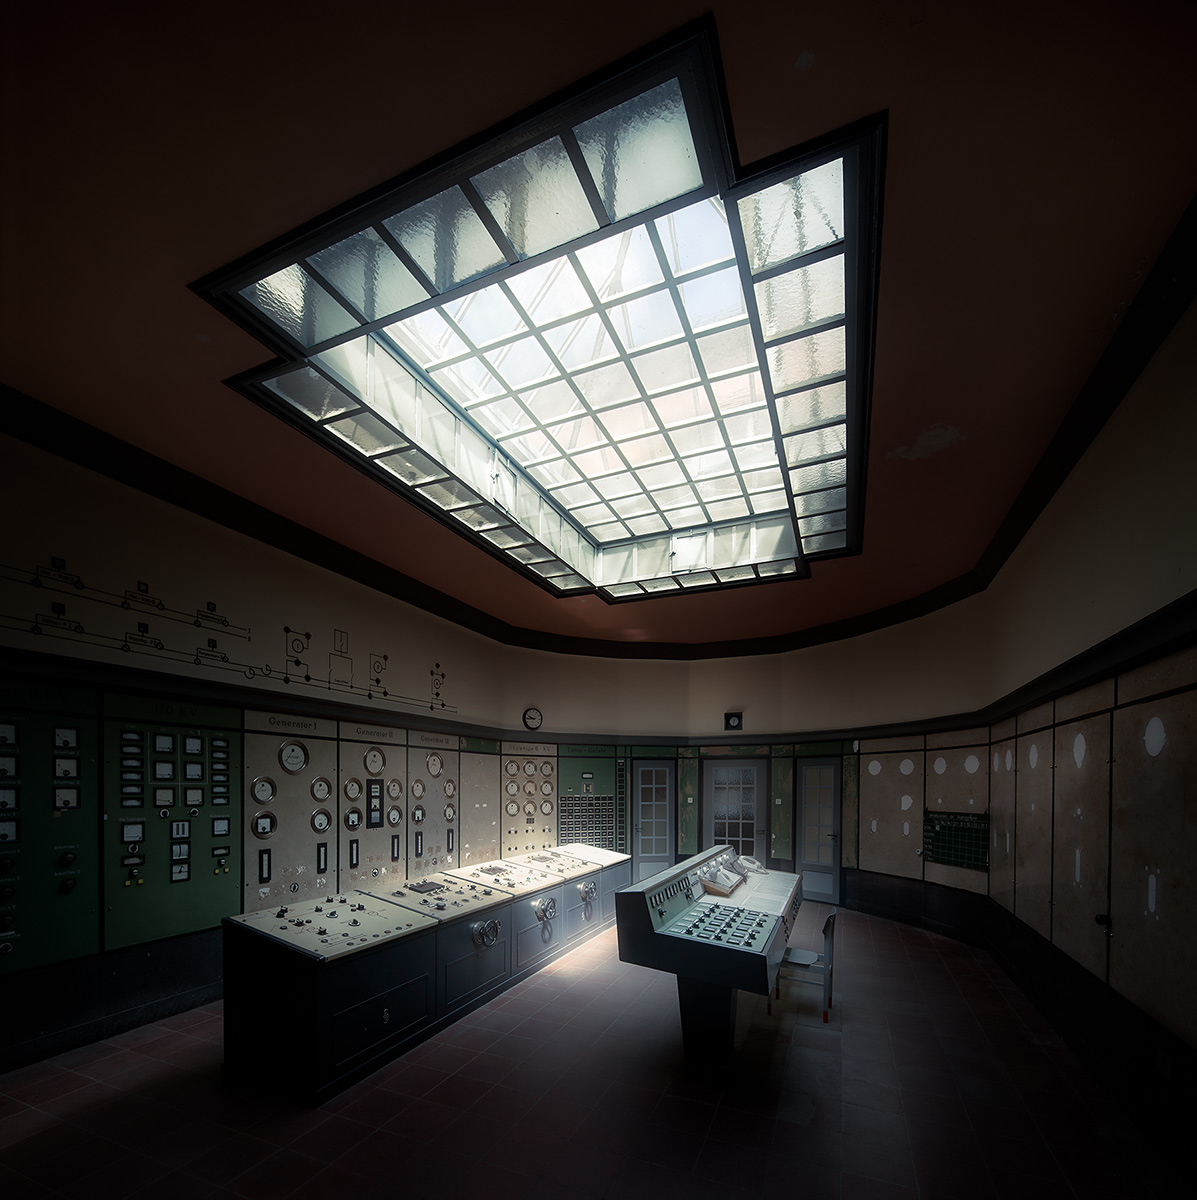 HDR,power plant,control,room,abandoned,light,shadows,industry